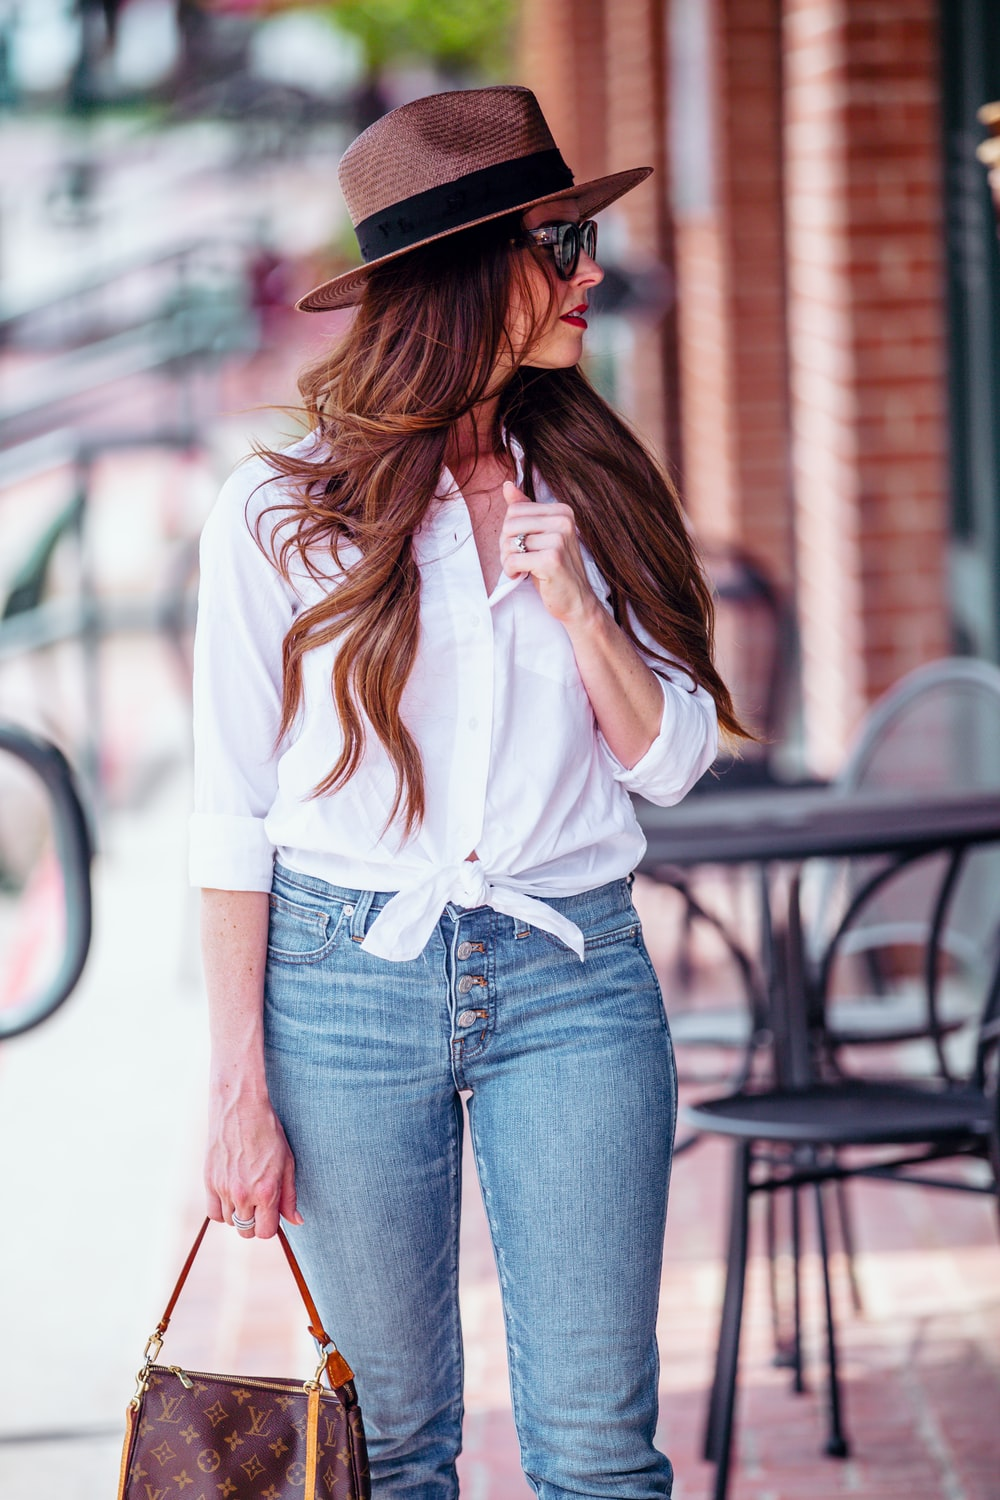 women's white dress shirt and blue jeans